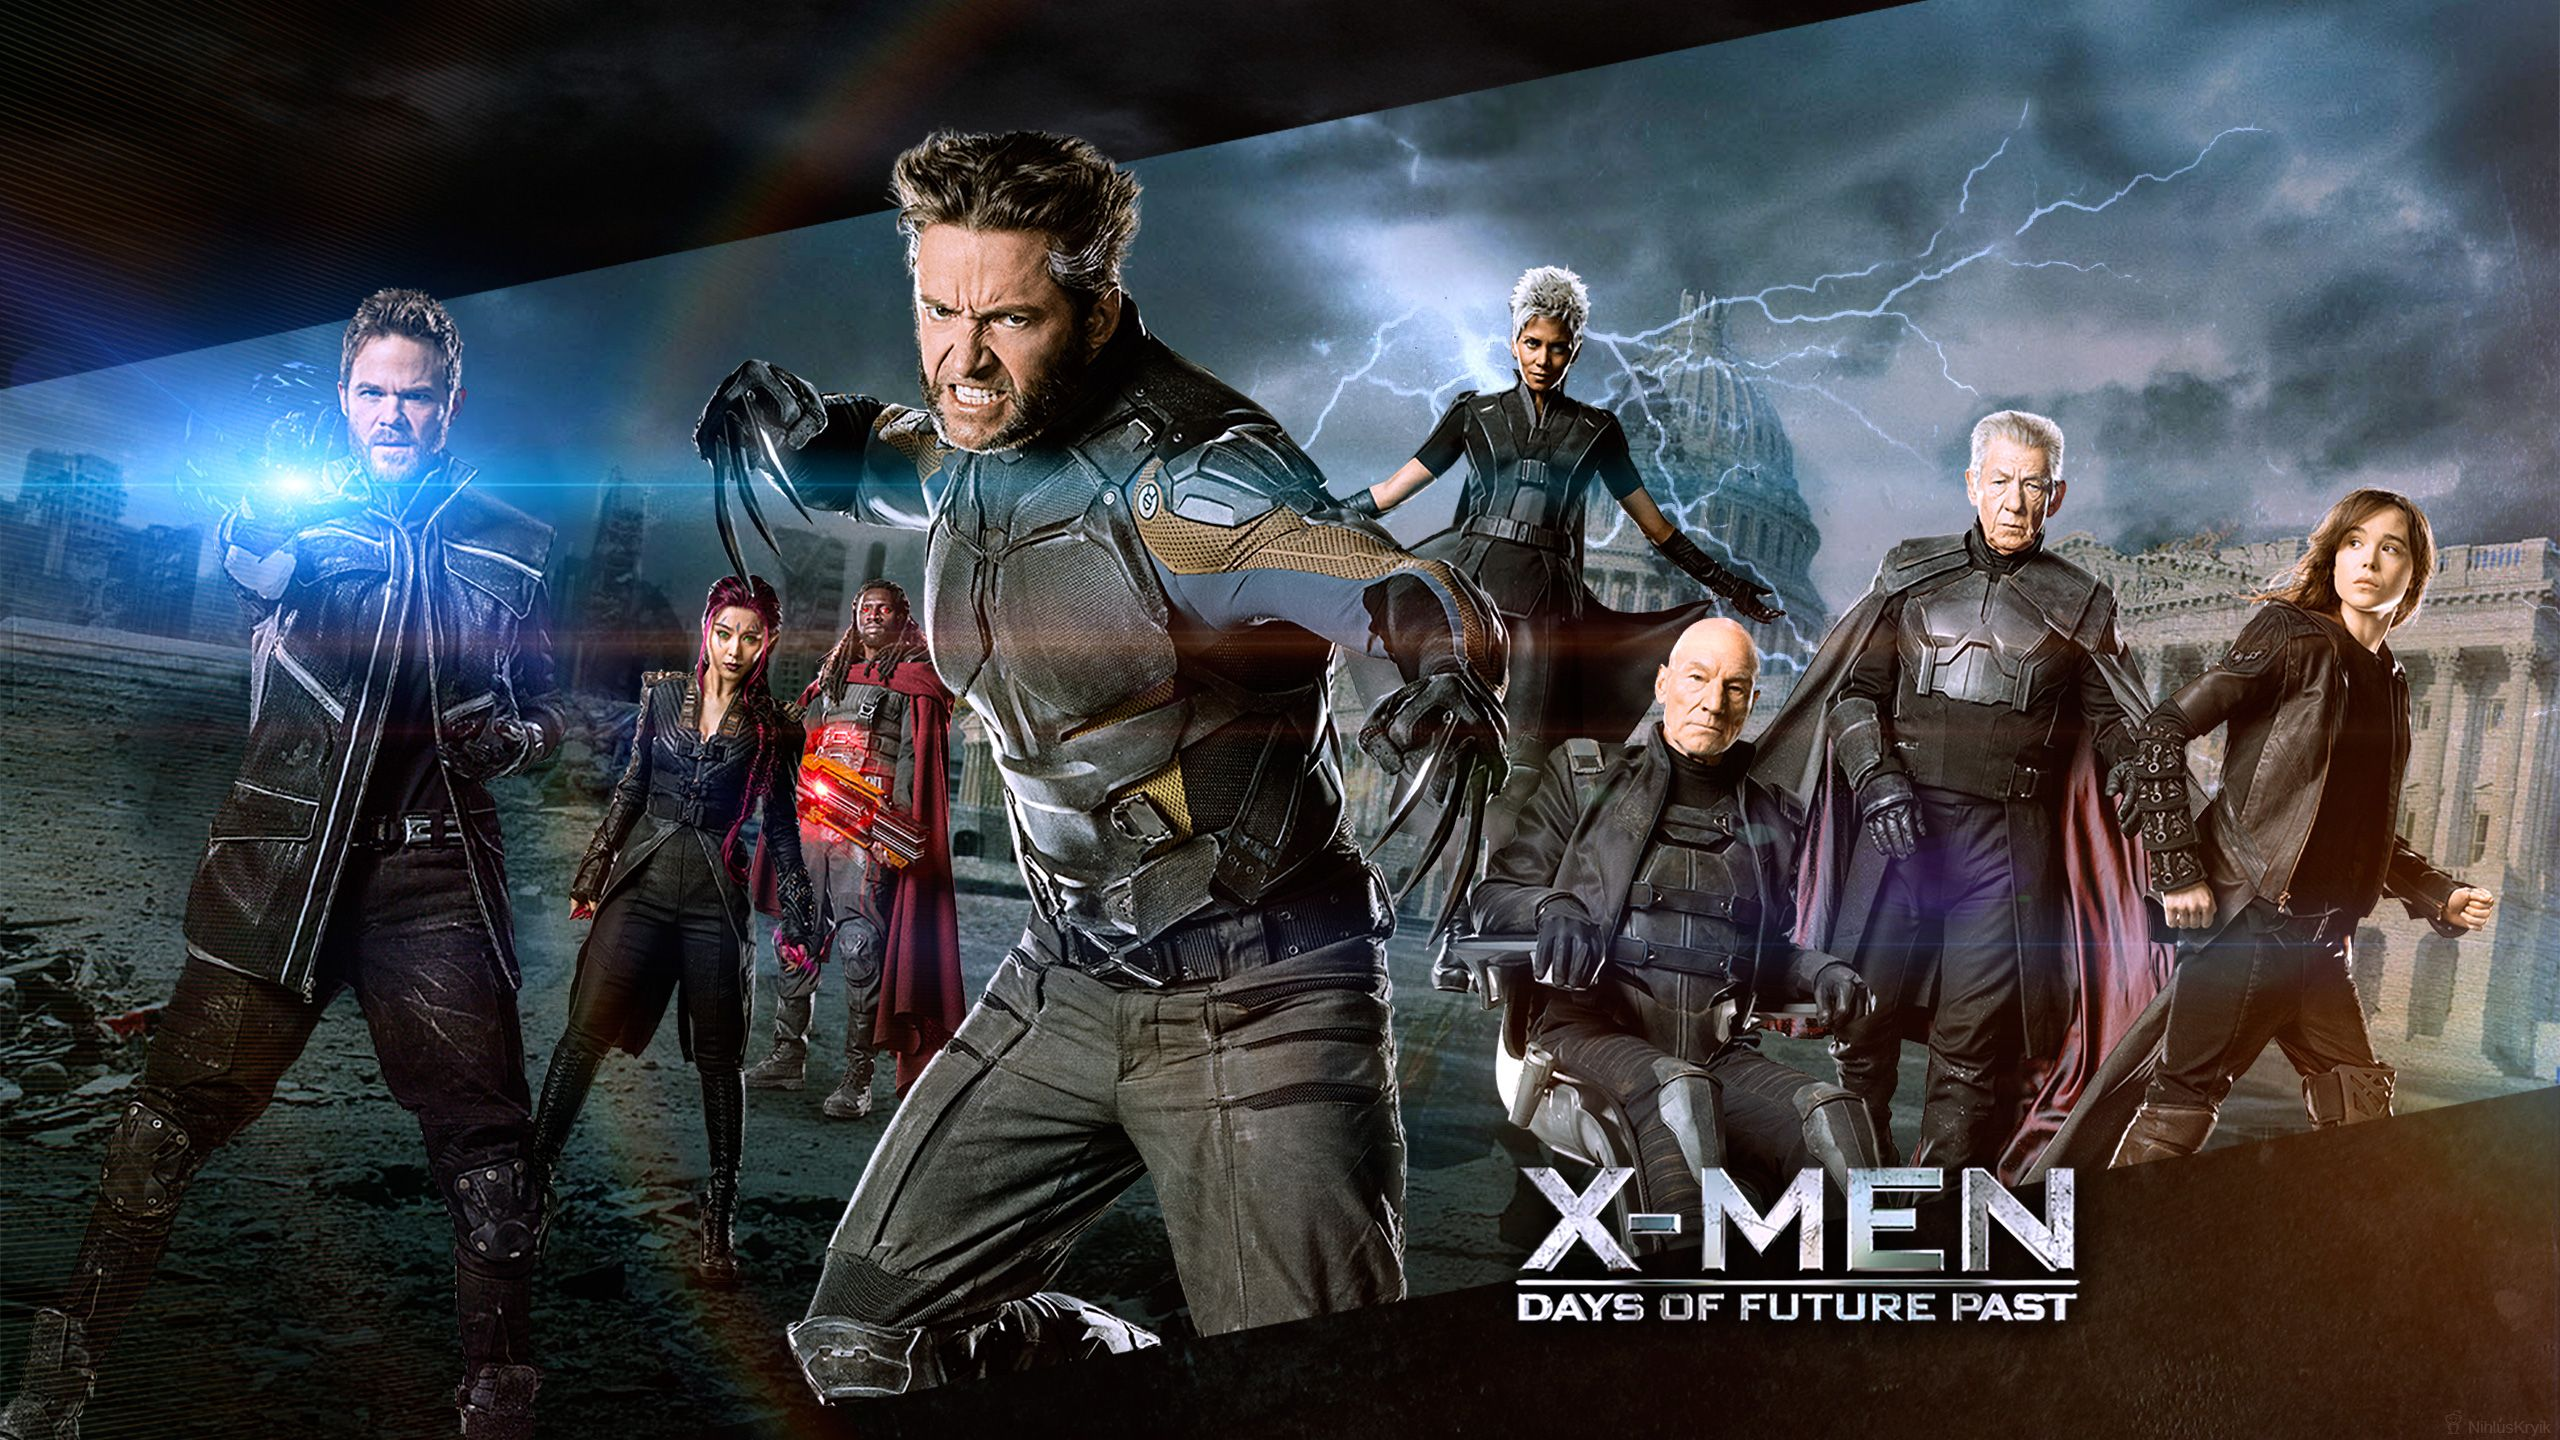 X-Men-Days-of-Future-Past-2014-poster